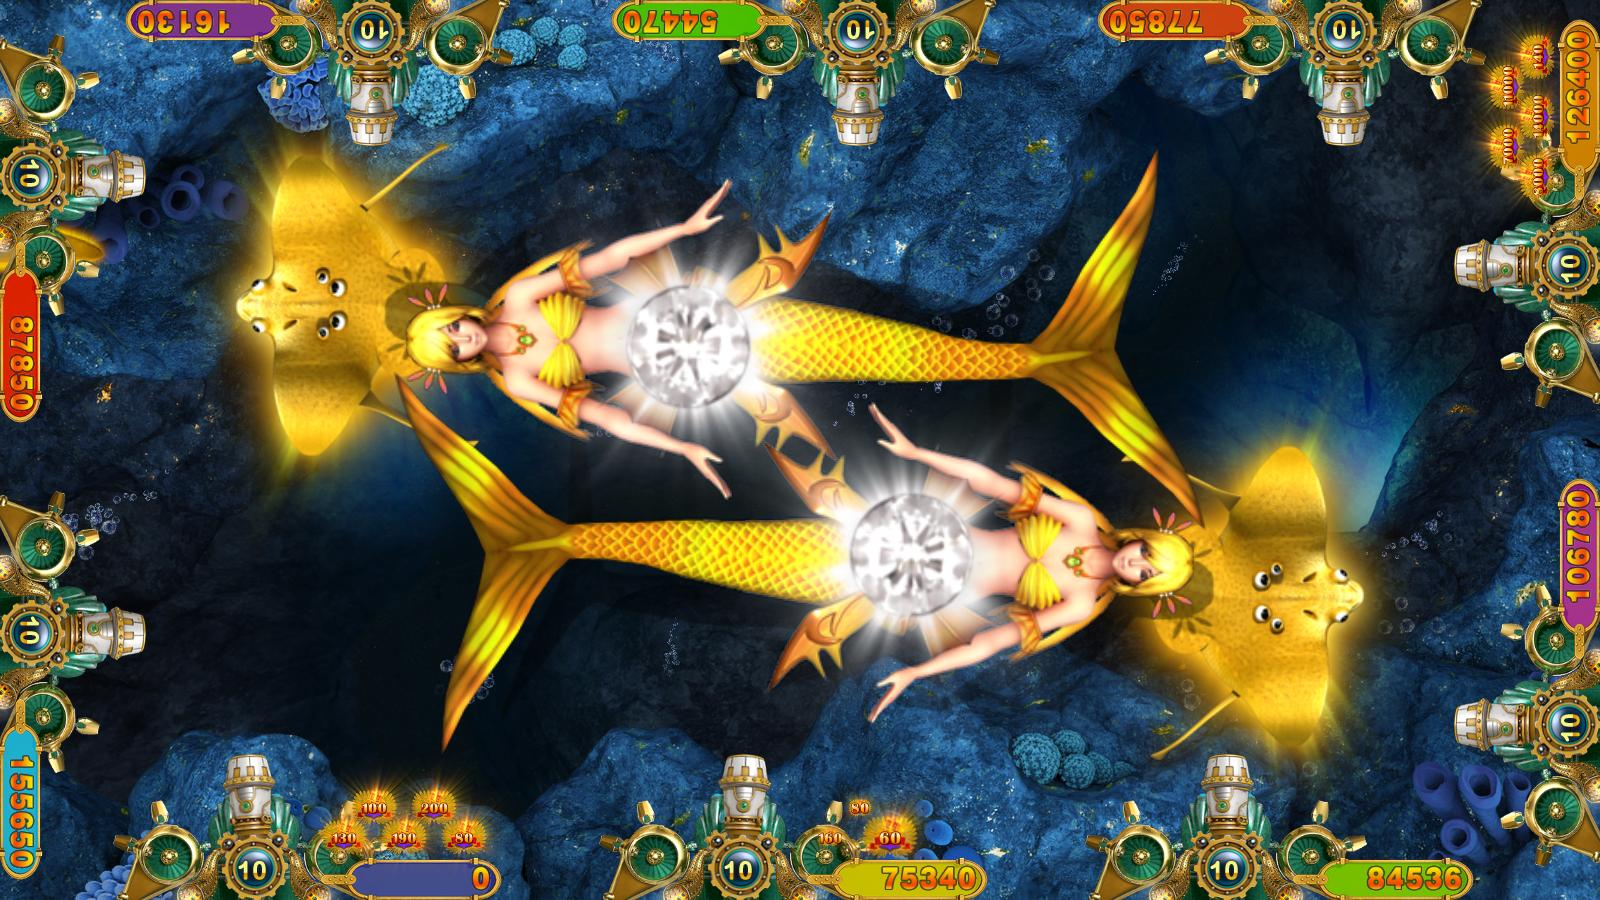 Intelligent Game shooting fish gambling game Crystal Mermaid